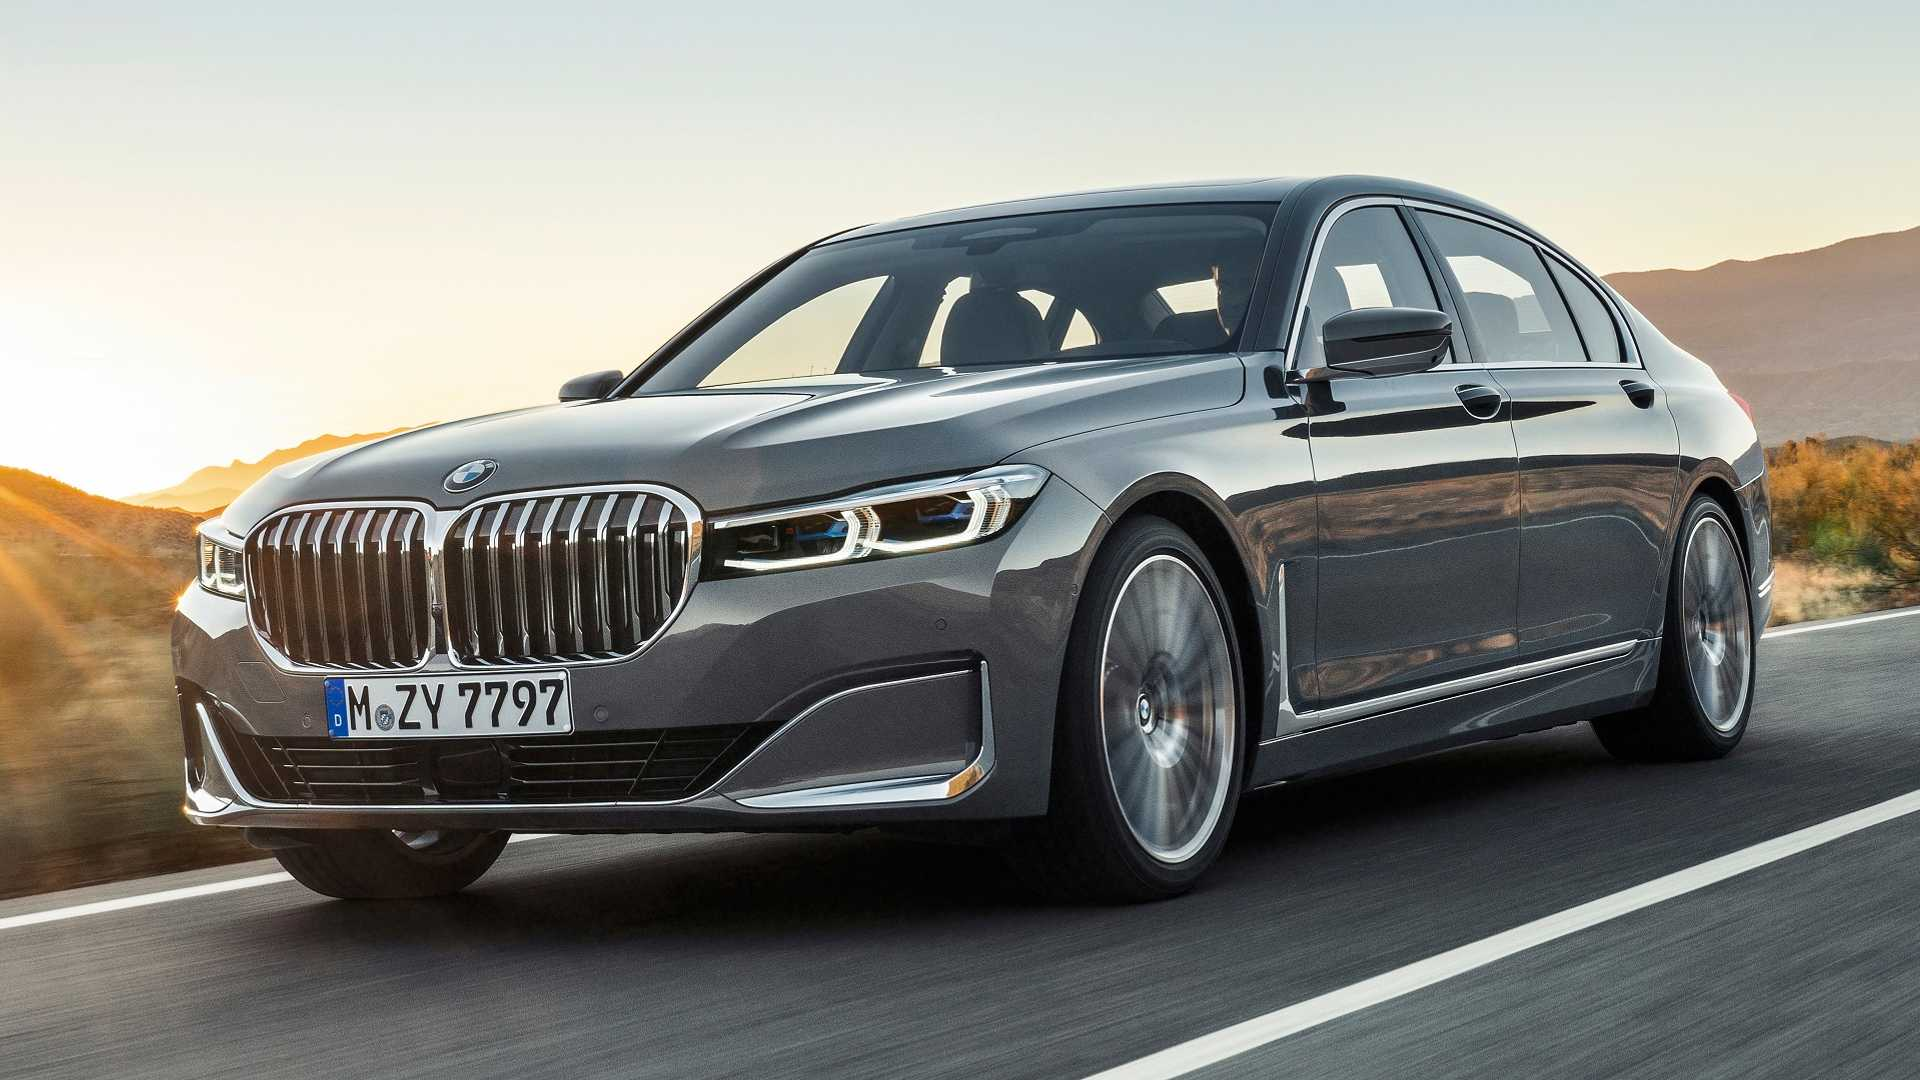 69 The Bmw News 2020 Price And Release Date